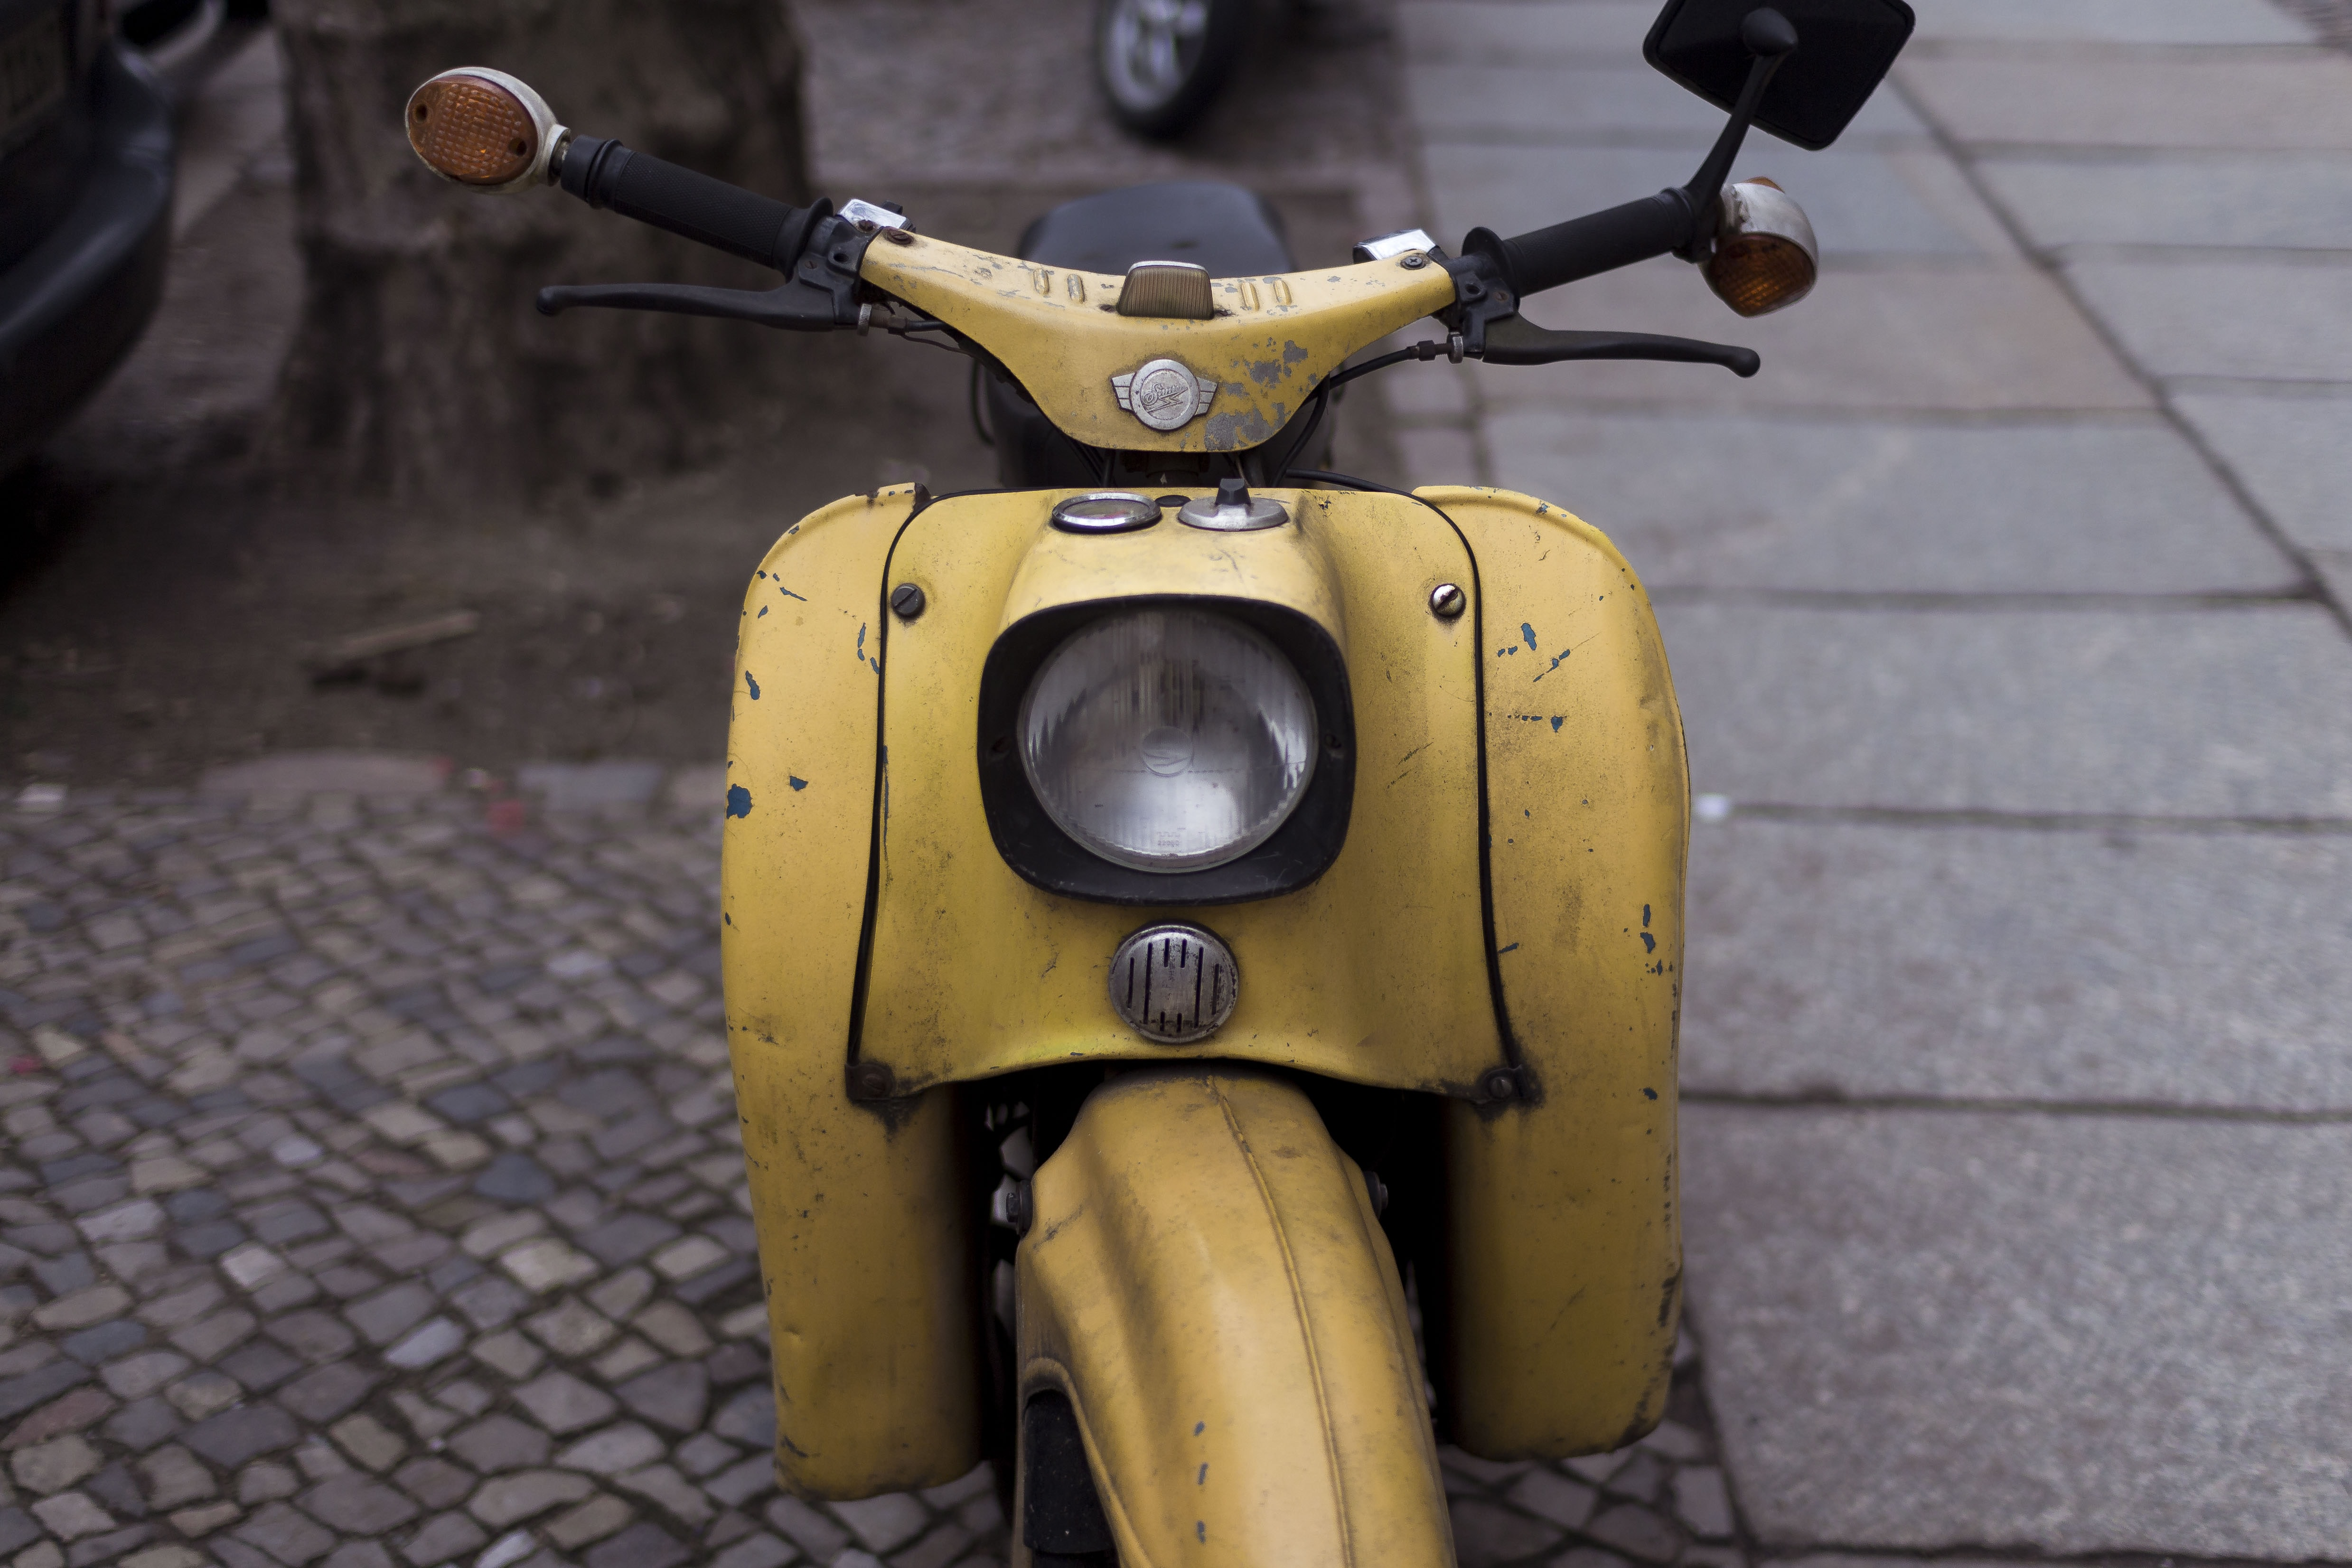 closeup photo of yellow motor scooter